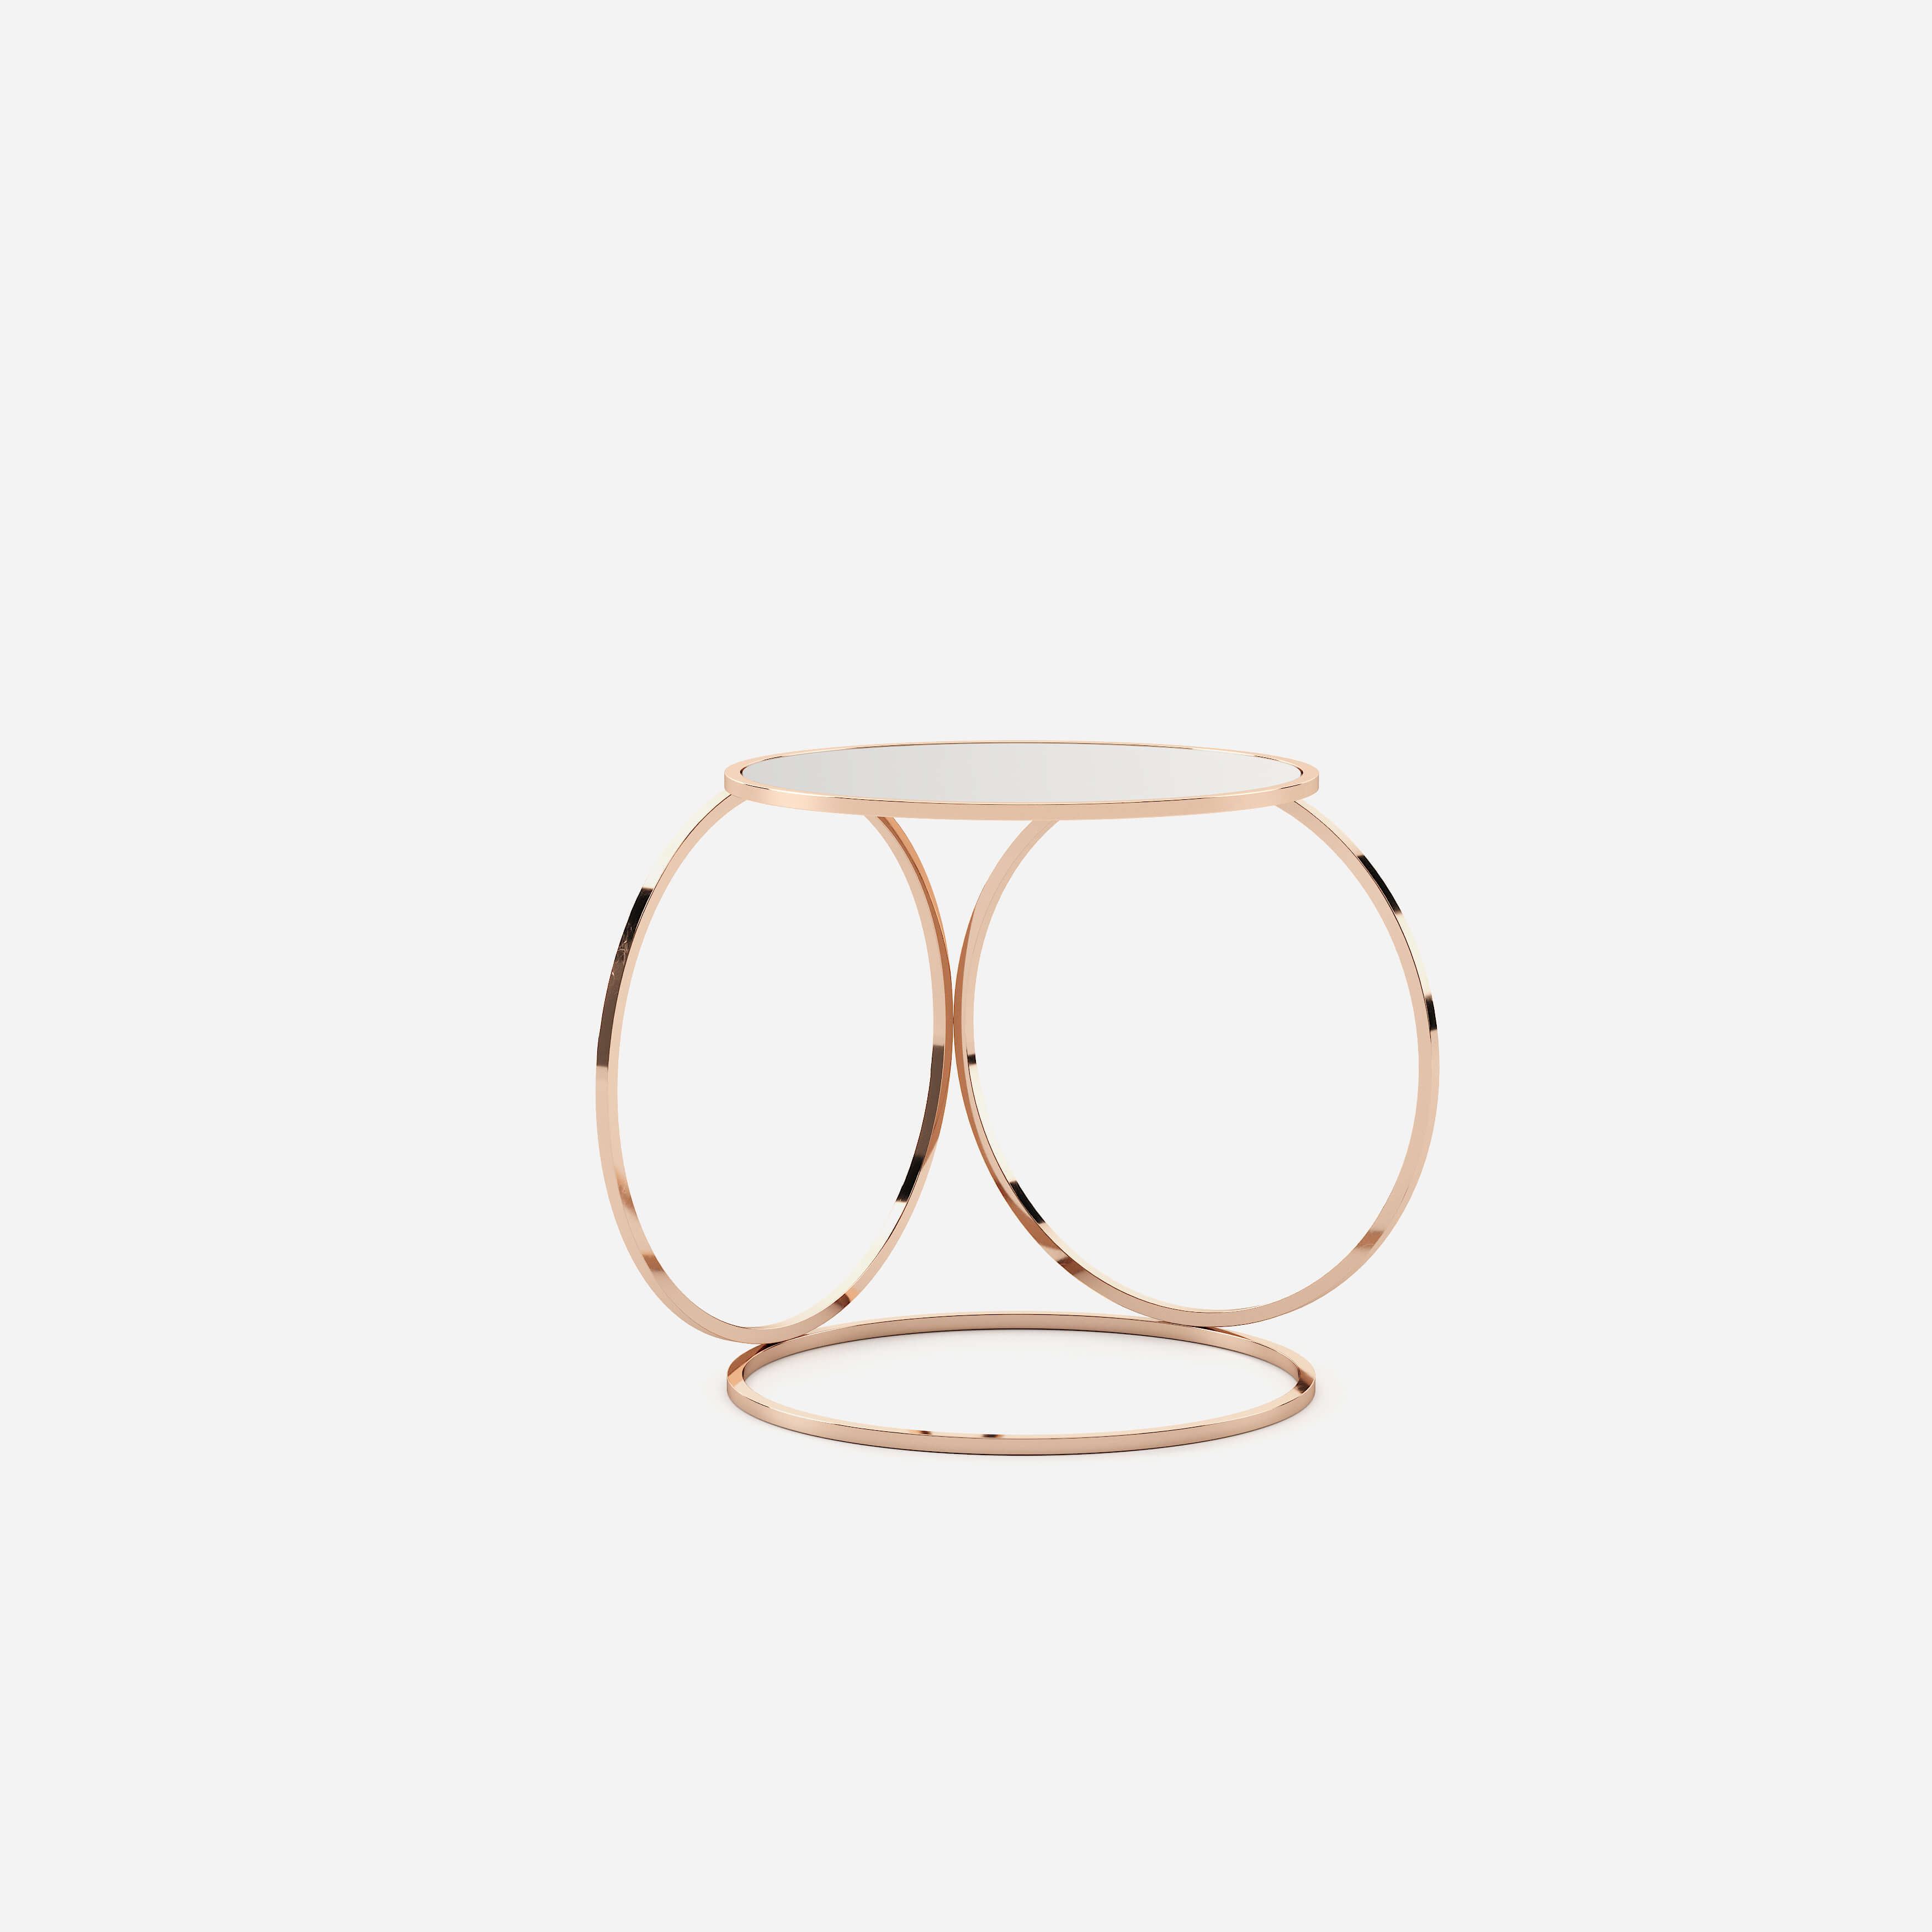 sharon-side-table-metal-glass-domkapa-modern-furniture-charm-luxe-details-design-projects-1